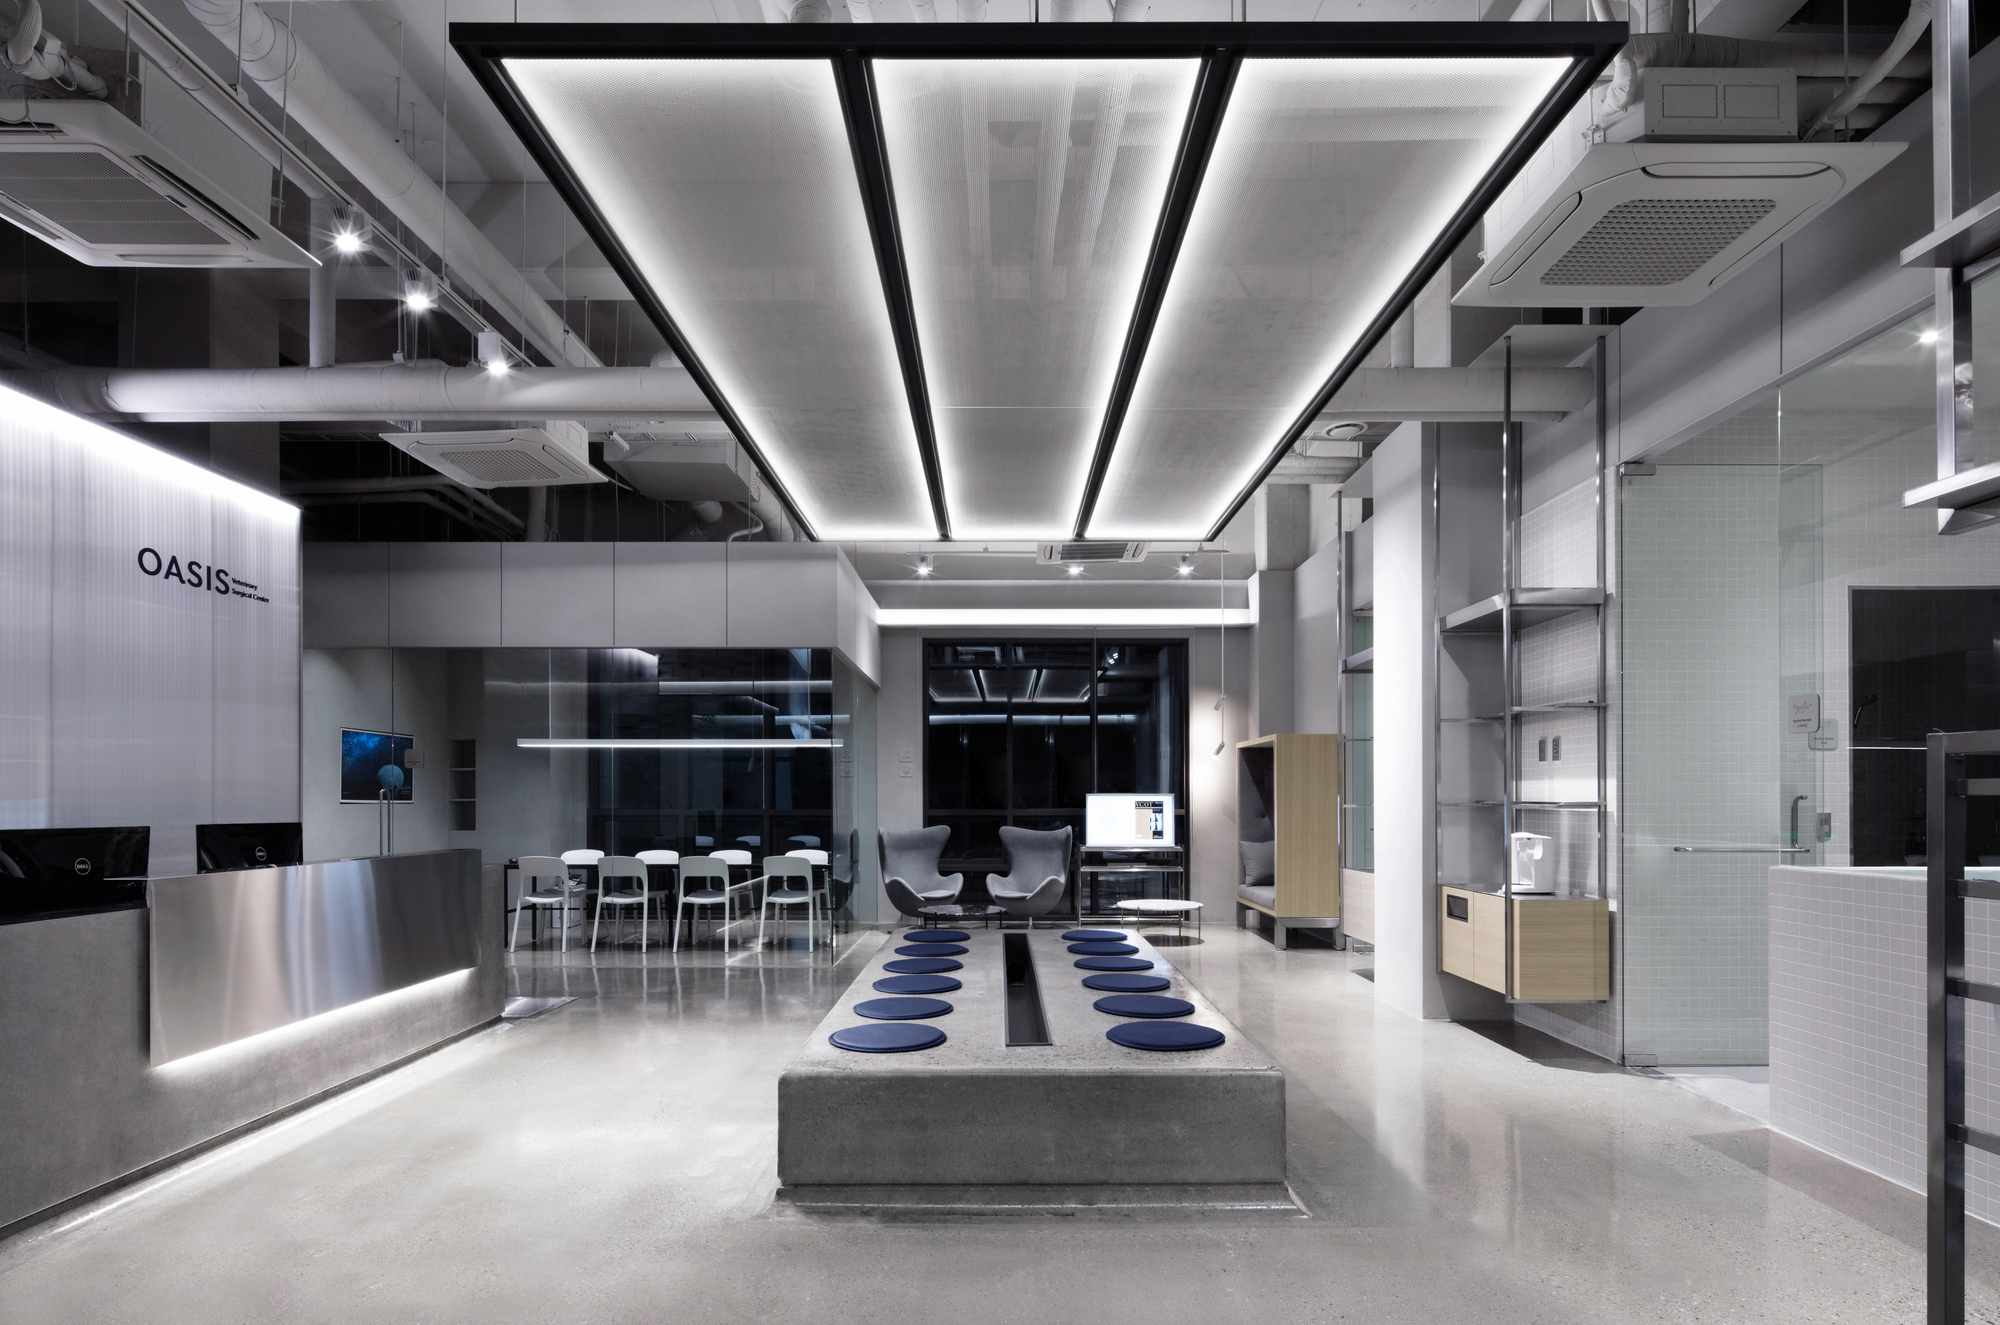 Gallery of oasis veterinary betwin space design 7 for Hae yong interior designs